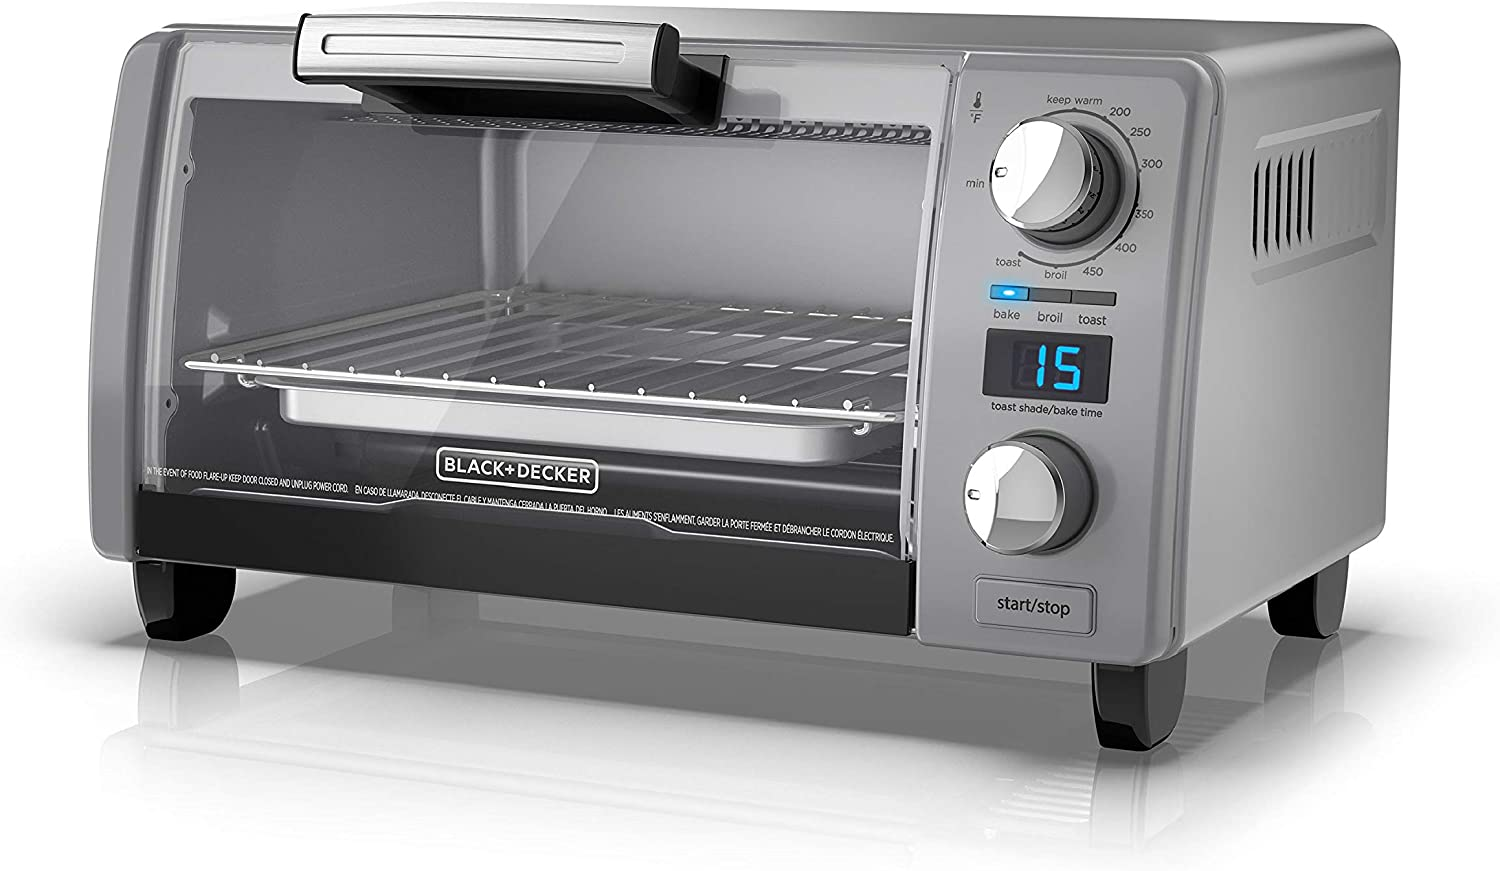 BLACK DECKER TOD1770G 4-Slice Natural Convection Digital Toaster Oven, Grey, 15.3 x 9.8 x 7 , Gray